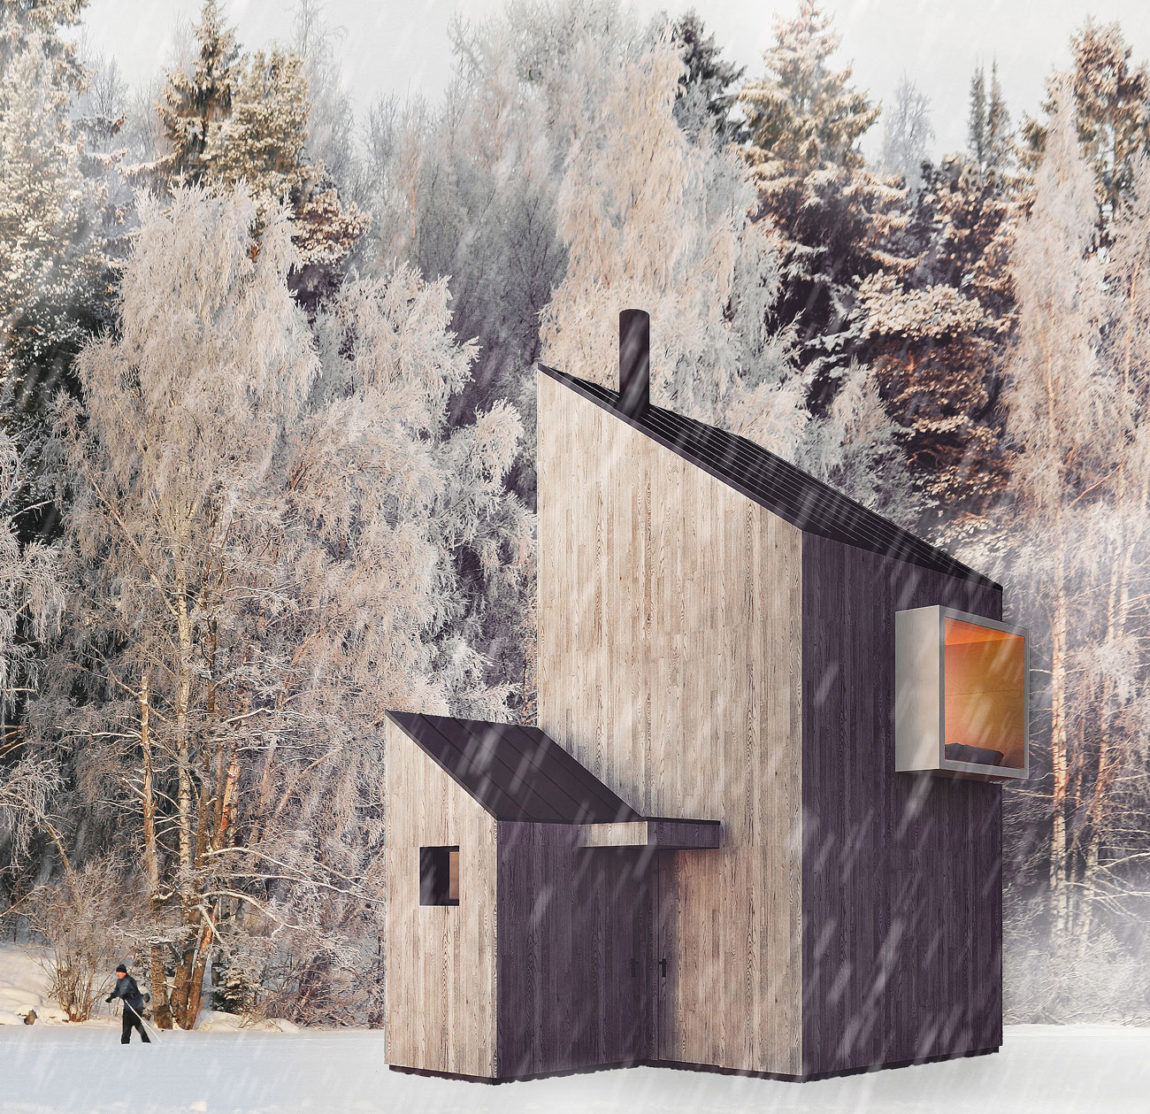 A Modern Winter Shelter by FO4A Architecture (3)